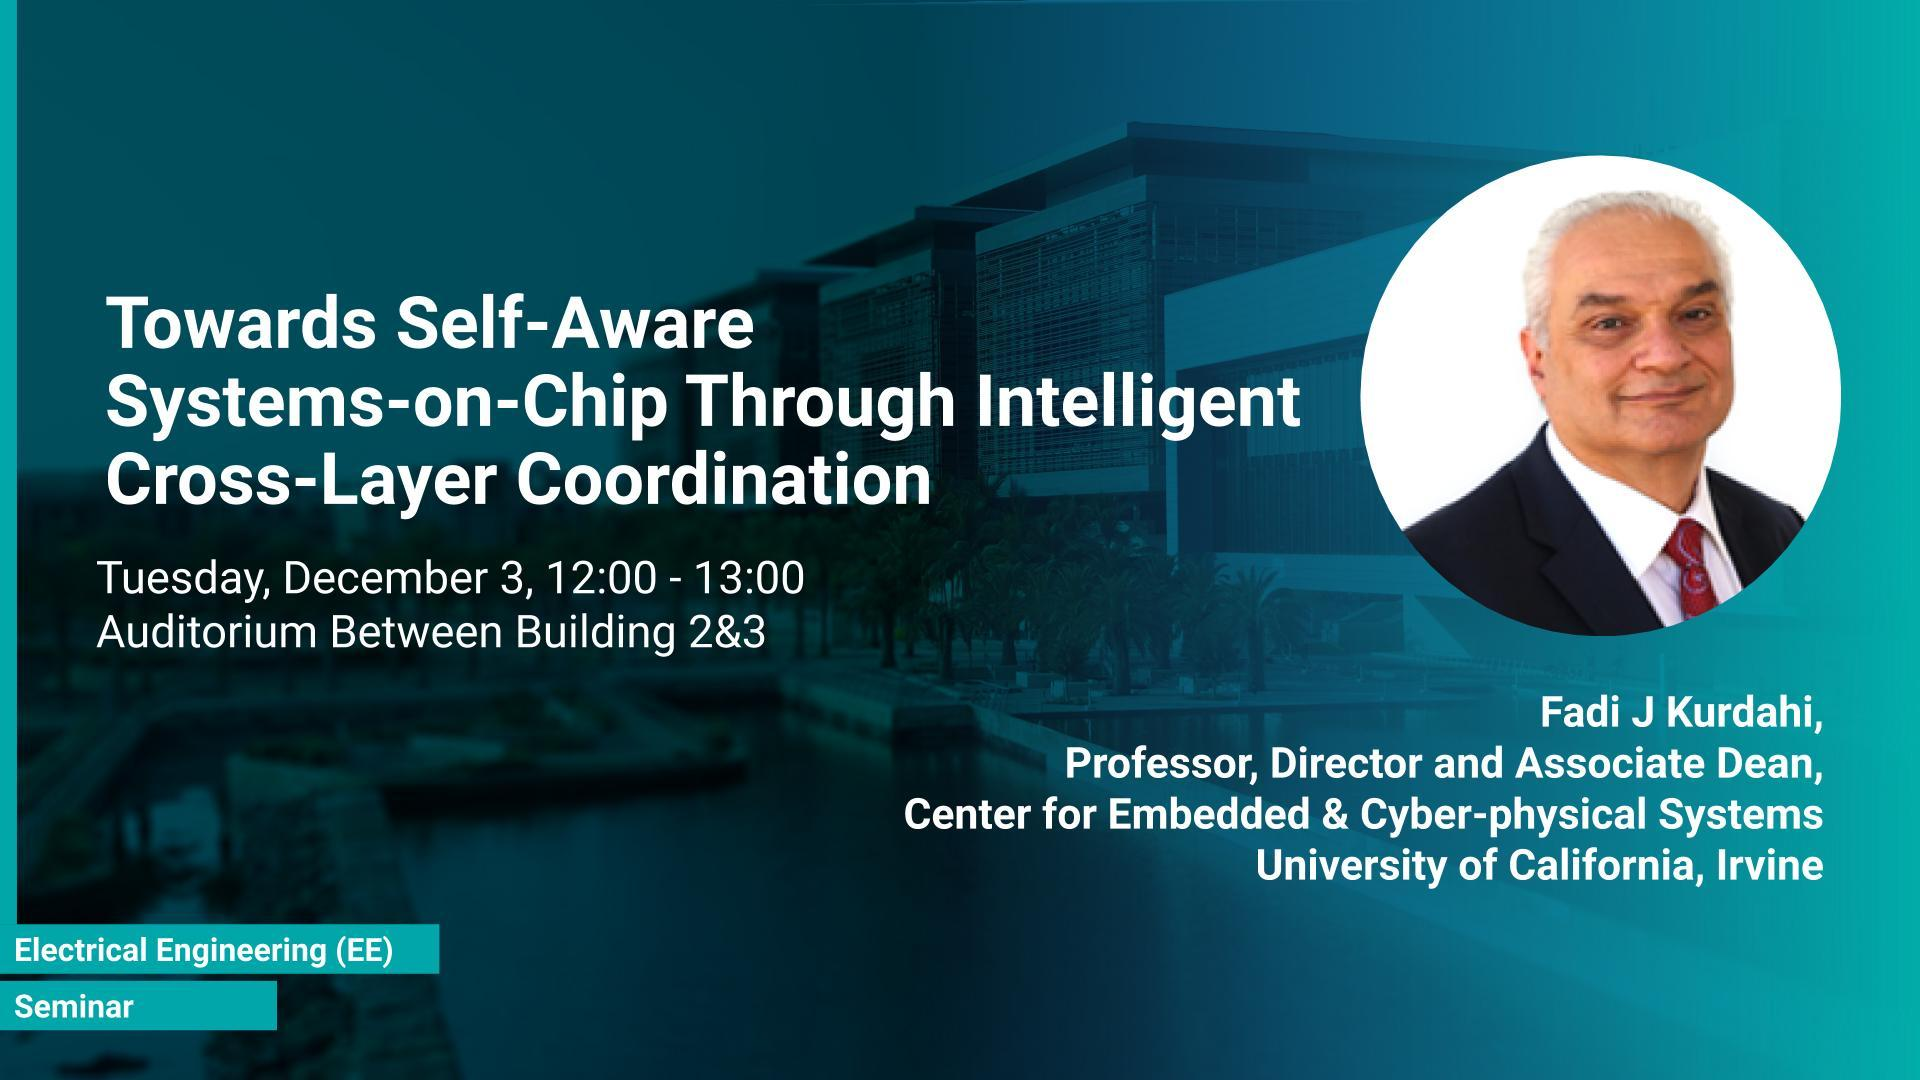 KAUST-CEMSE-EE-Seminar-Fadi-J-Kurdahi-Towards-Self-Aware-Systems-on-Chip-Through-Intelligent-Cross-Layer-Coordination.jpg